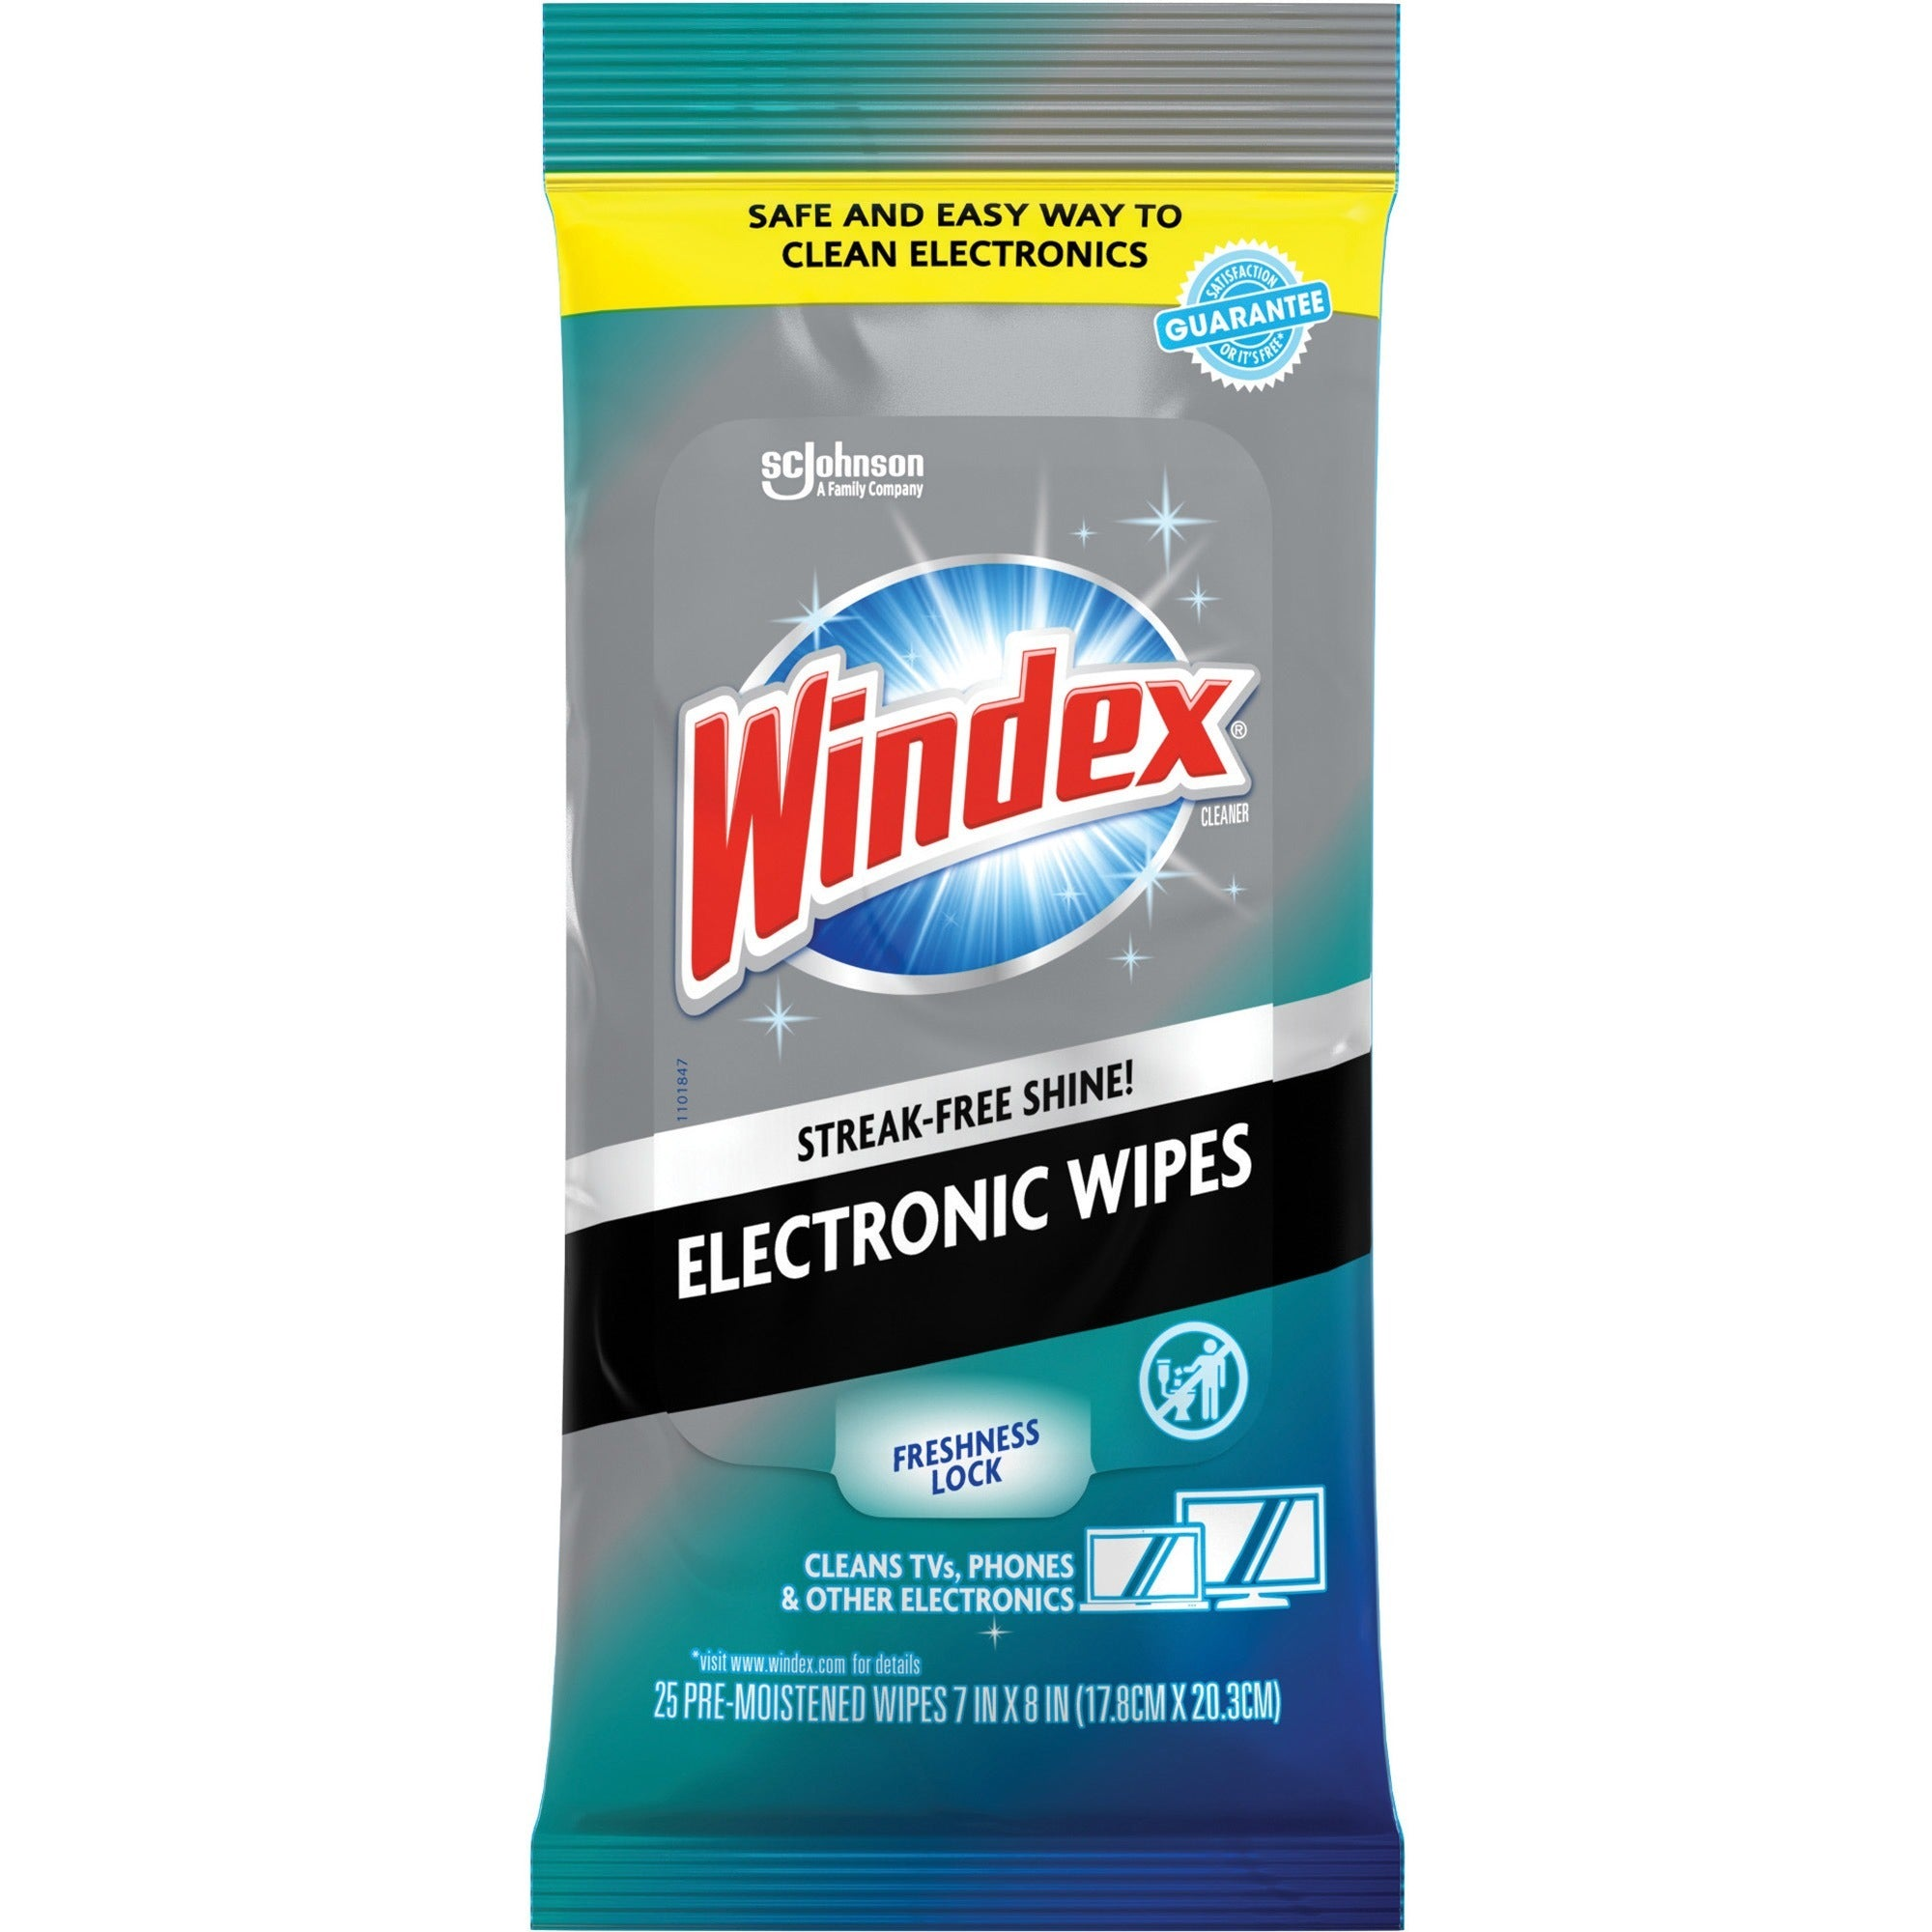 Windex Electronic Wipes 25ct